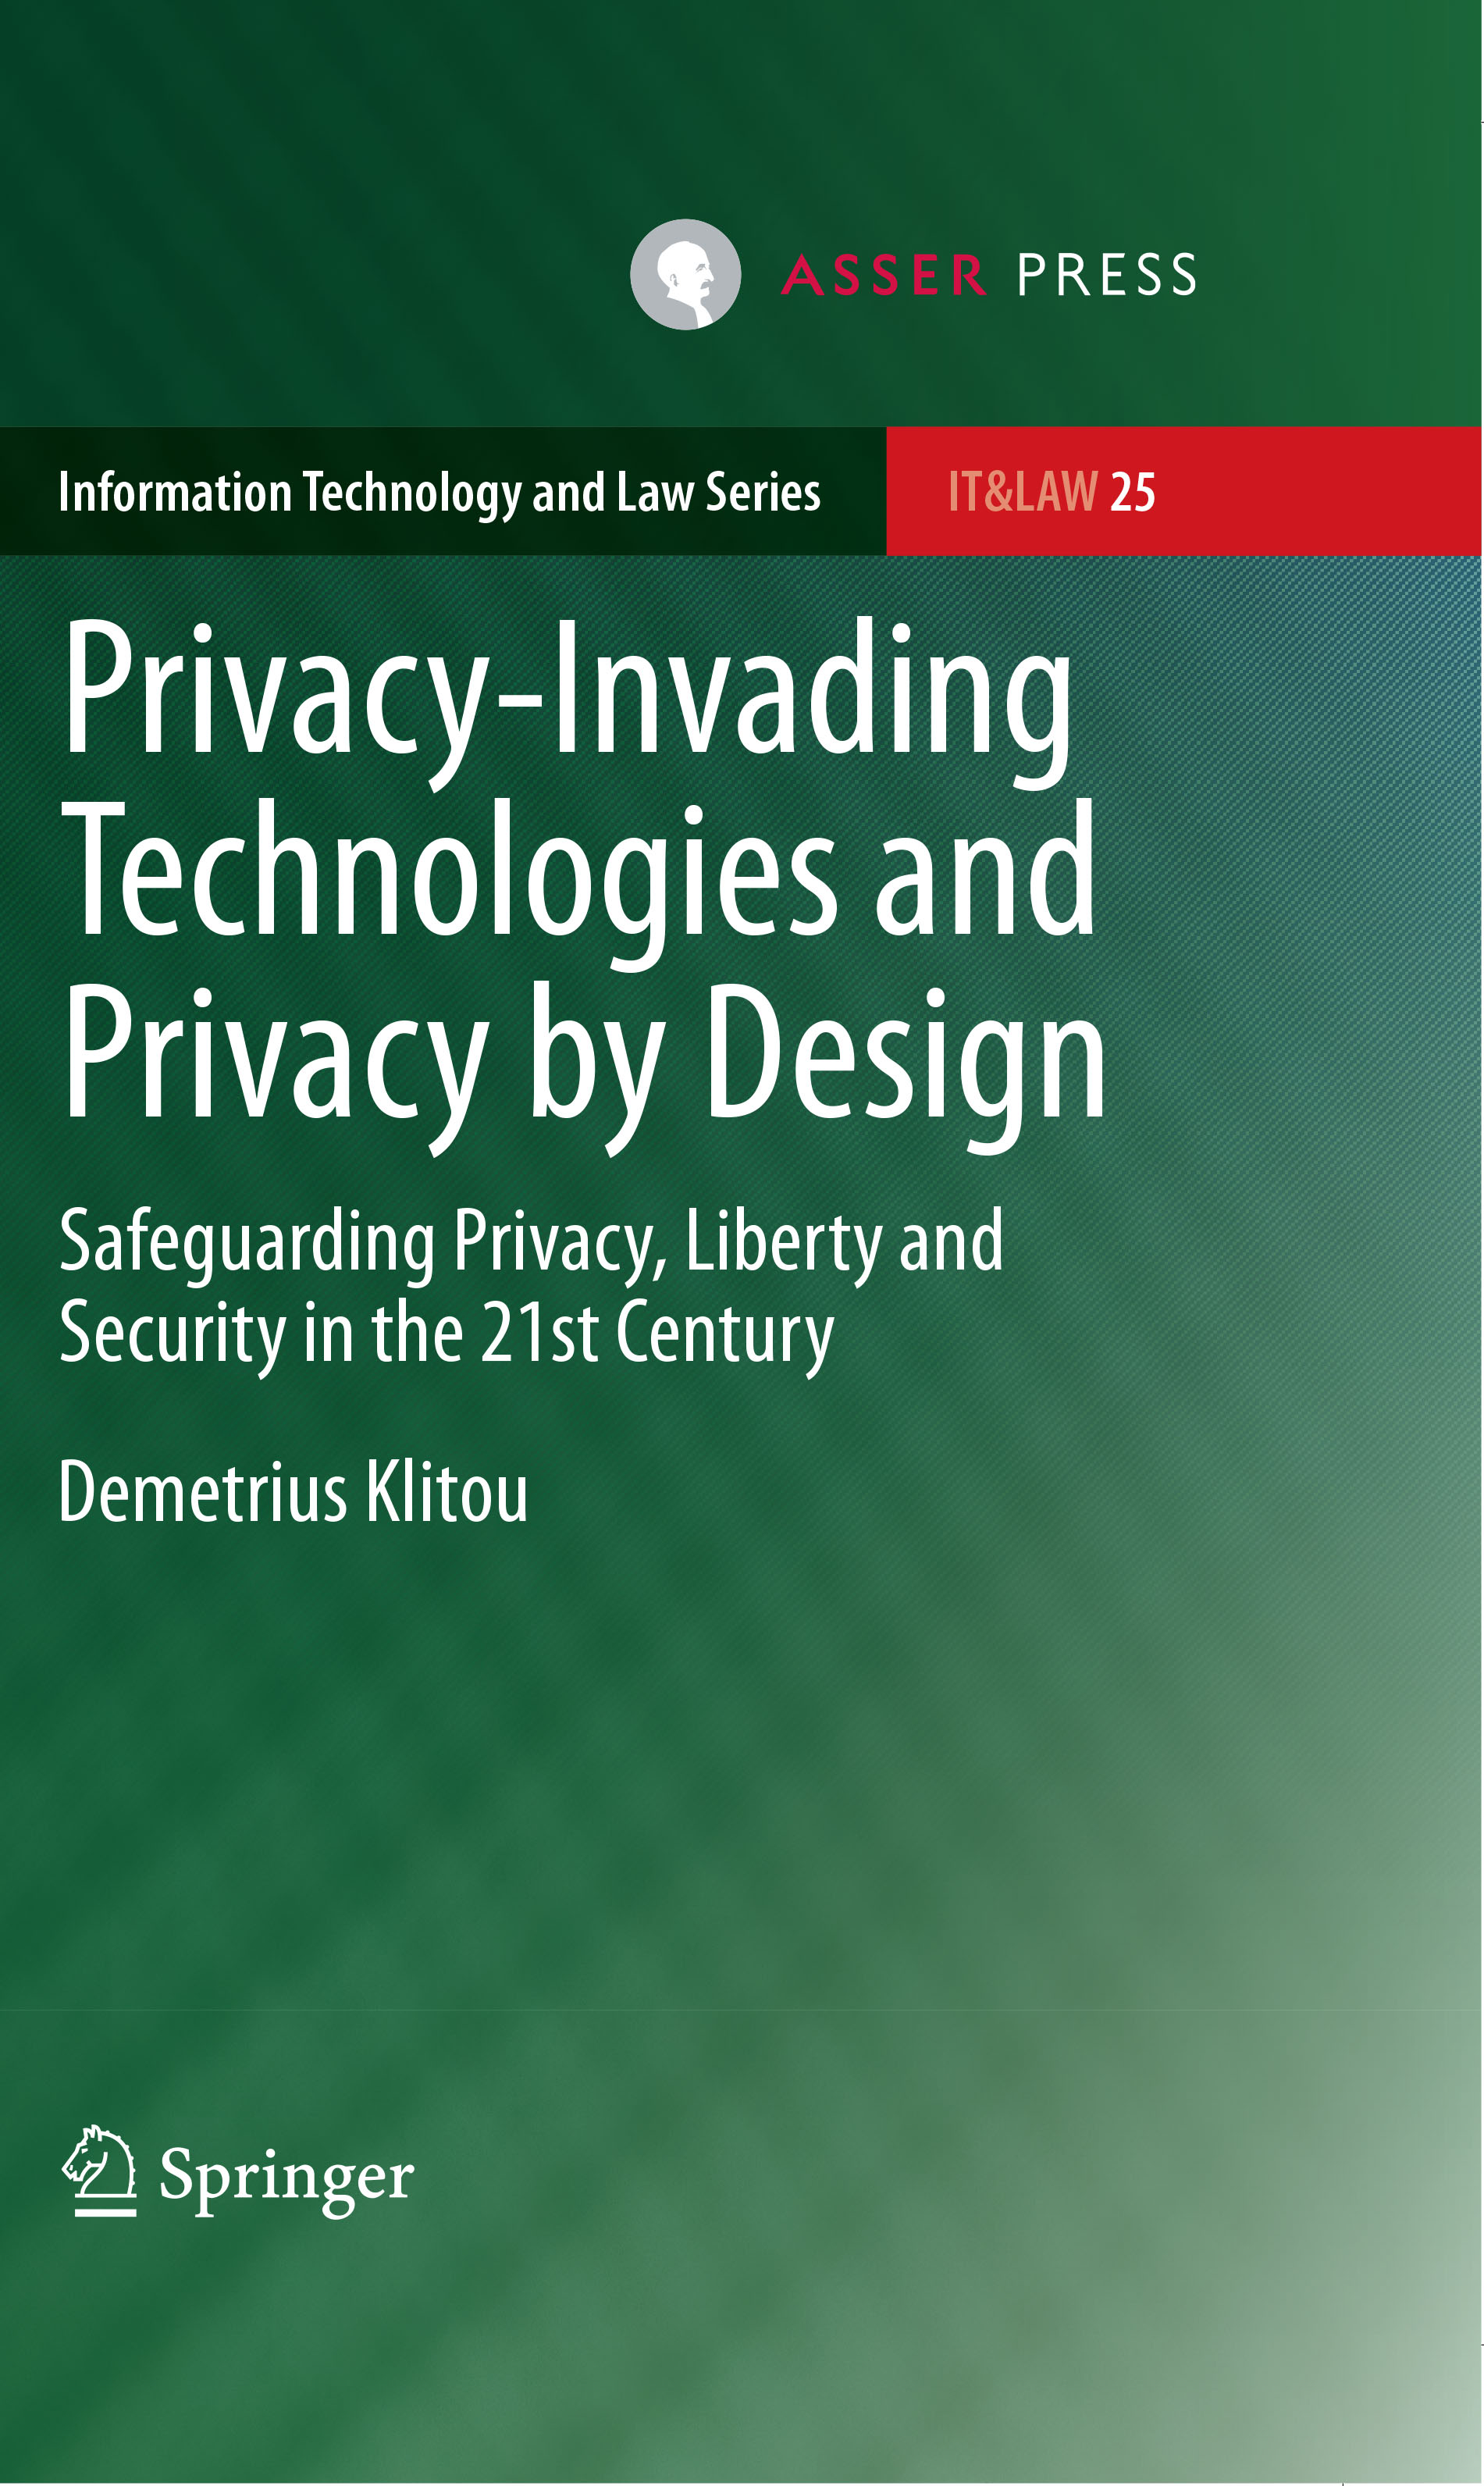 Privacy-Invading Technologies and Privacy by Design - Safeguarding Privacy, Liberty and  Security in the 21st Century